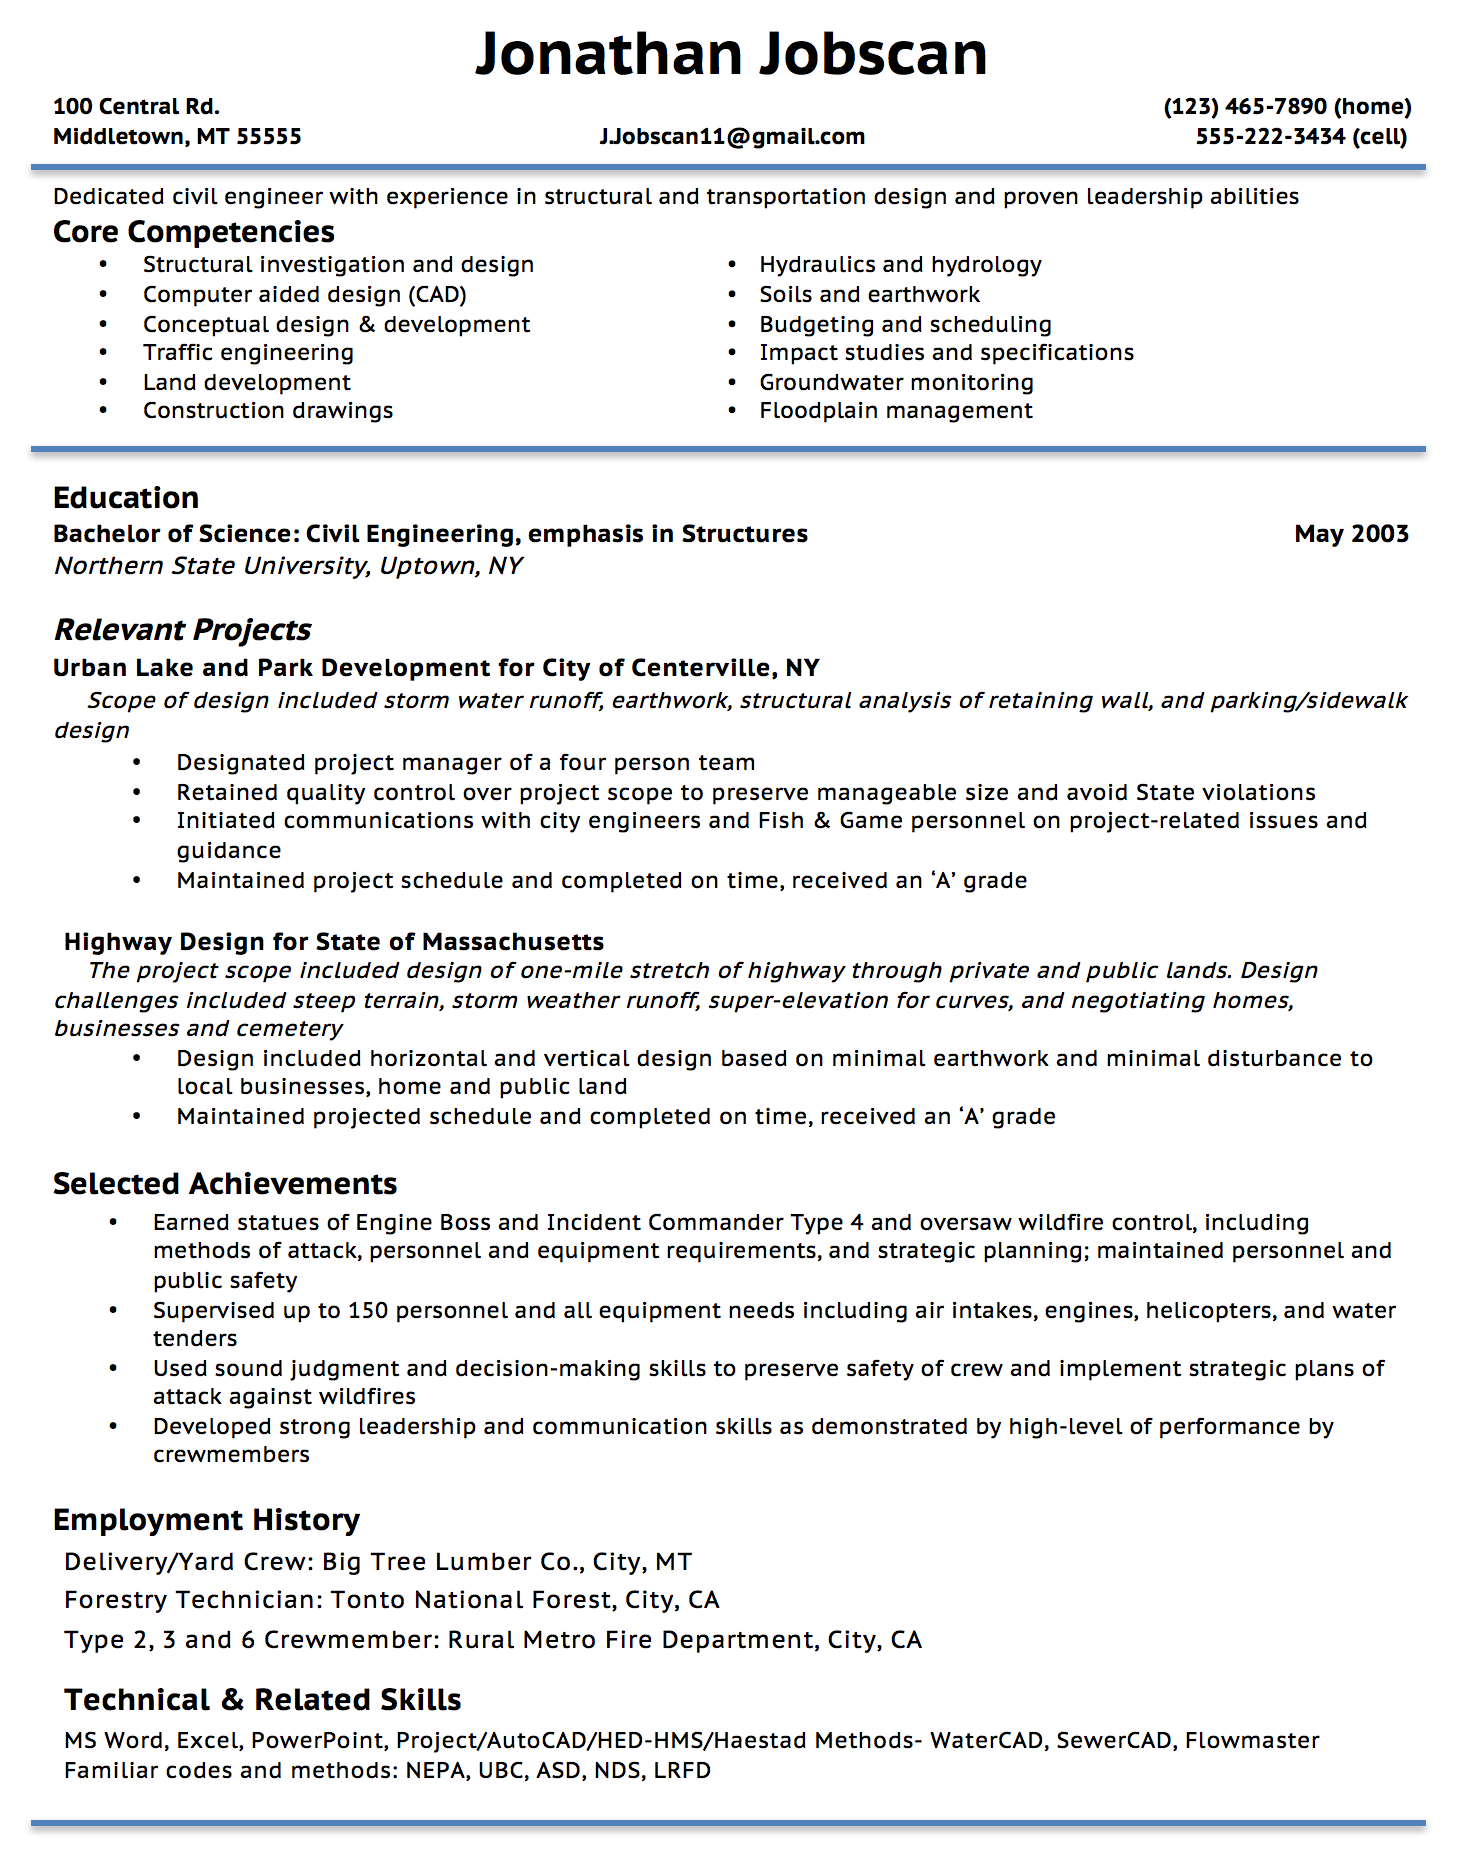 Opposenewapstandardsus  Wonderful Resume Writing Guide  Jobscan With Licious Example Of A Functional Resume Format With Astounding Job Description Resume Also Dance Resume Templates In Addition Inside Sales Representative Resume And Adobe Resume Template As Well As What To Say In A Resume Additionally Document Review Resume From Jobscanco With Opposenewapstandardsus  Licious Resume Writing Guide  Jobscan With Astounding Example Of A Functional Resume Format And Wonderful Job Description Resume Also Dance Resume Templates In Addition Inside Sales Representative Resume From Jobscanco